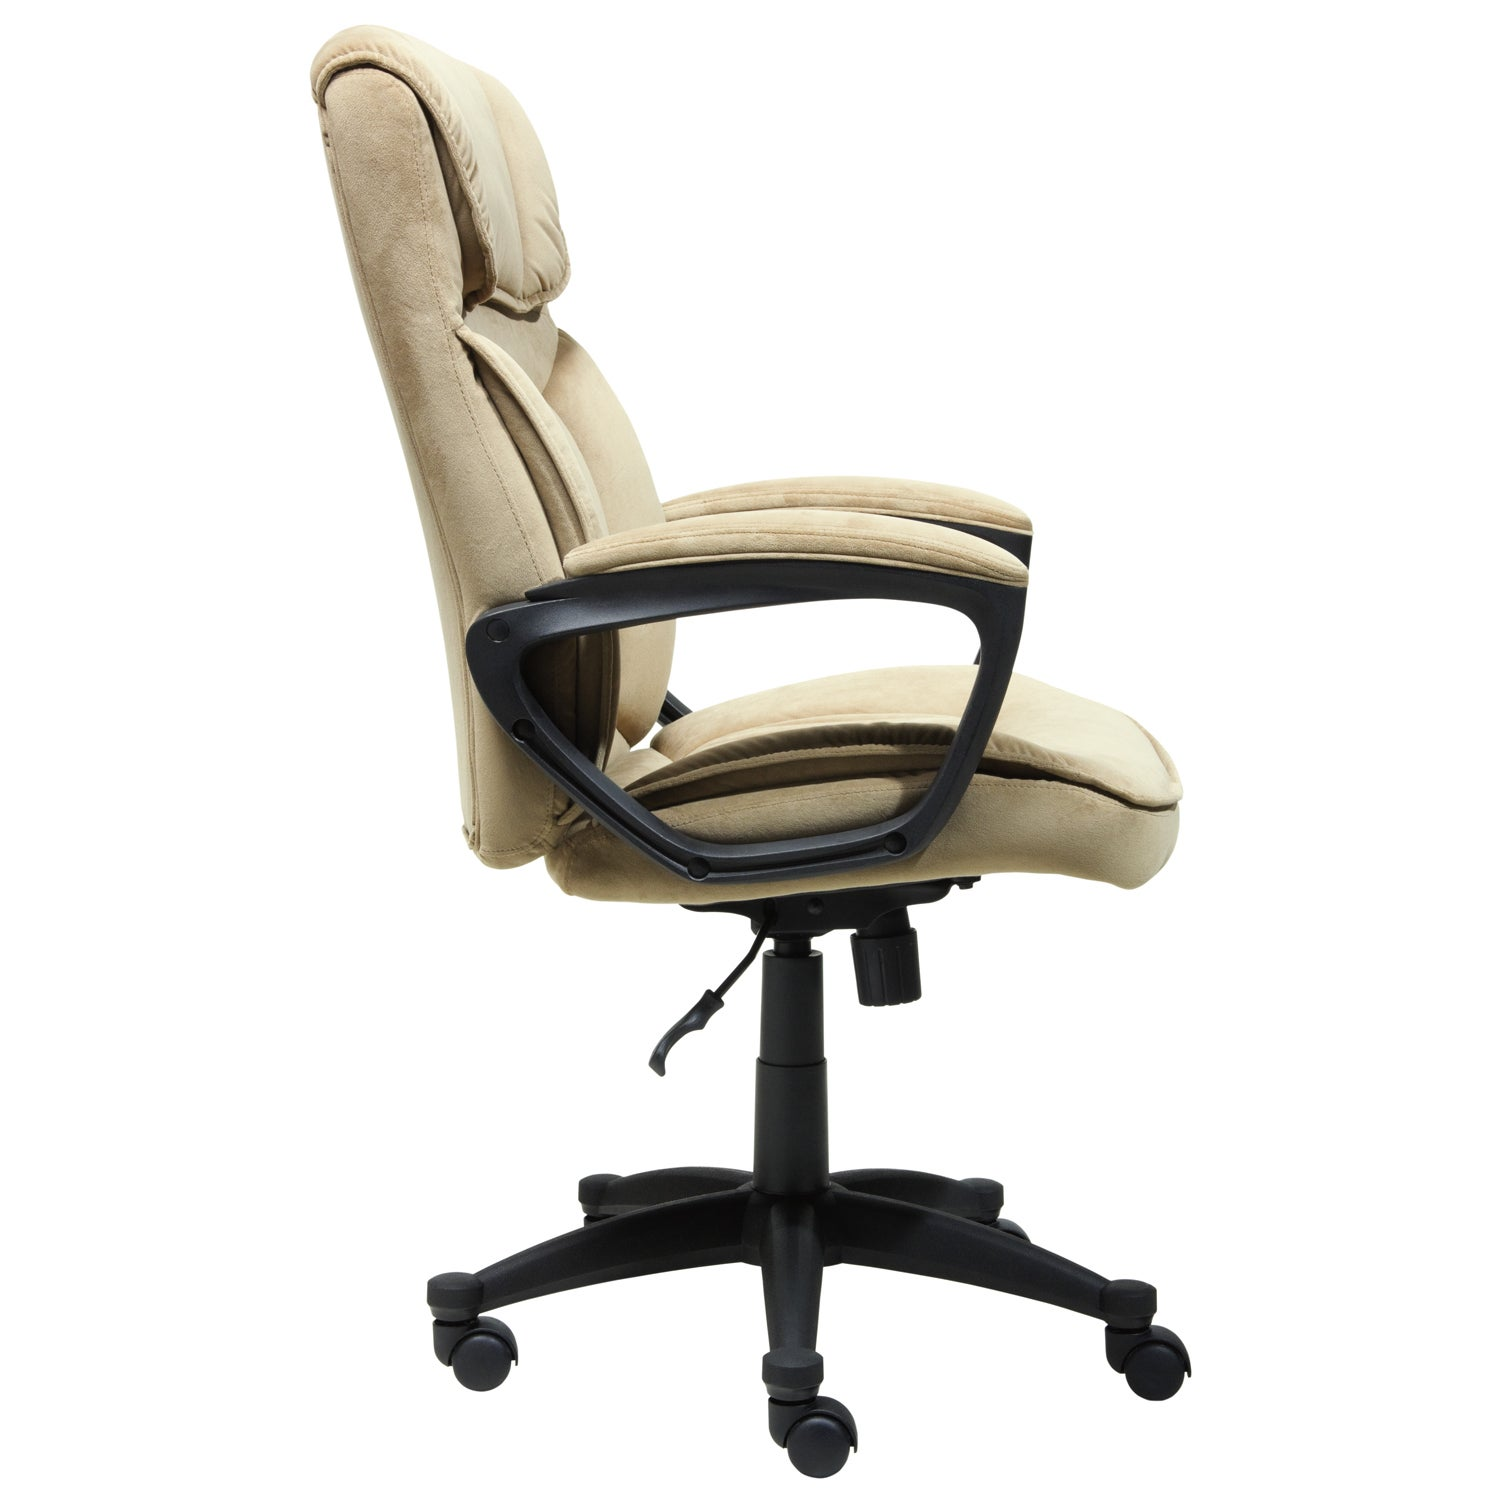 Serta Light Coffee Microfiber Executive Office Chair Free Shipping Today 9066791